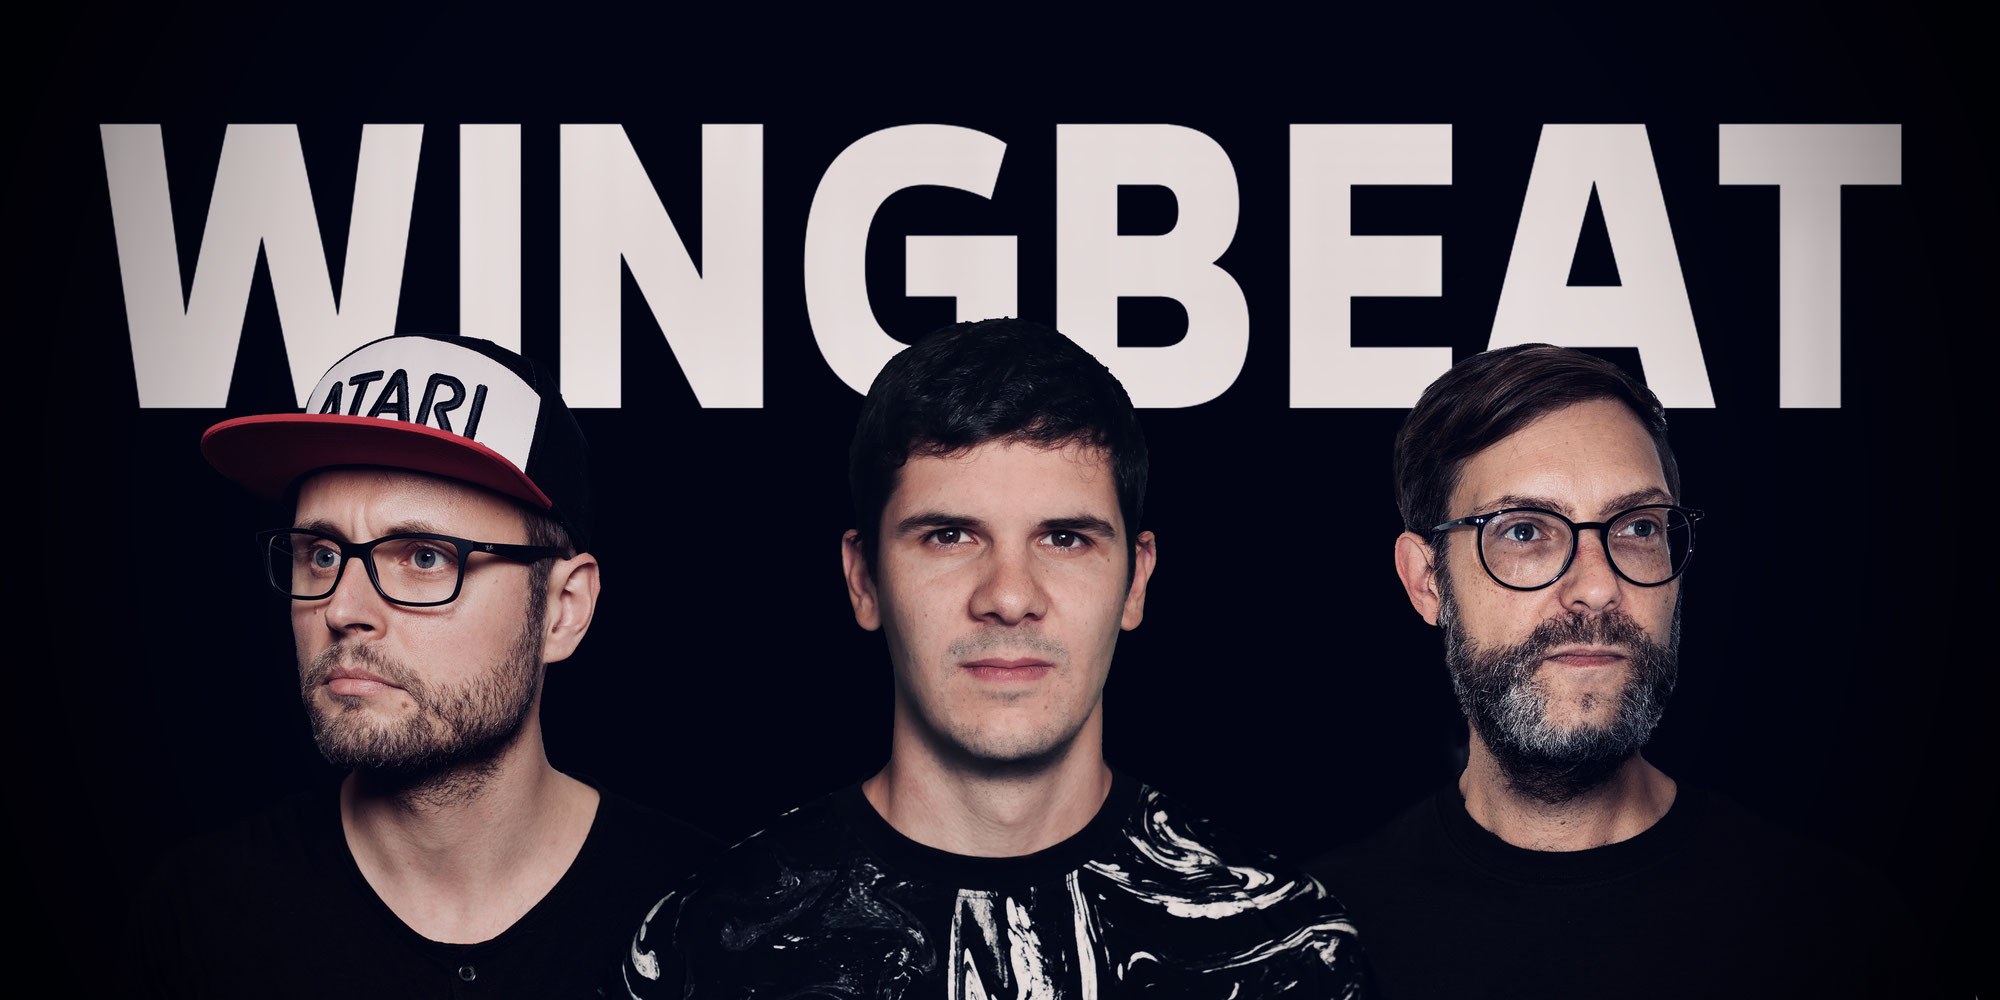 Wingbeat live EP video release